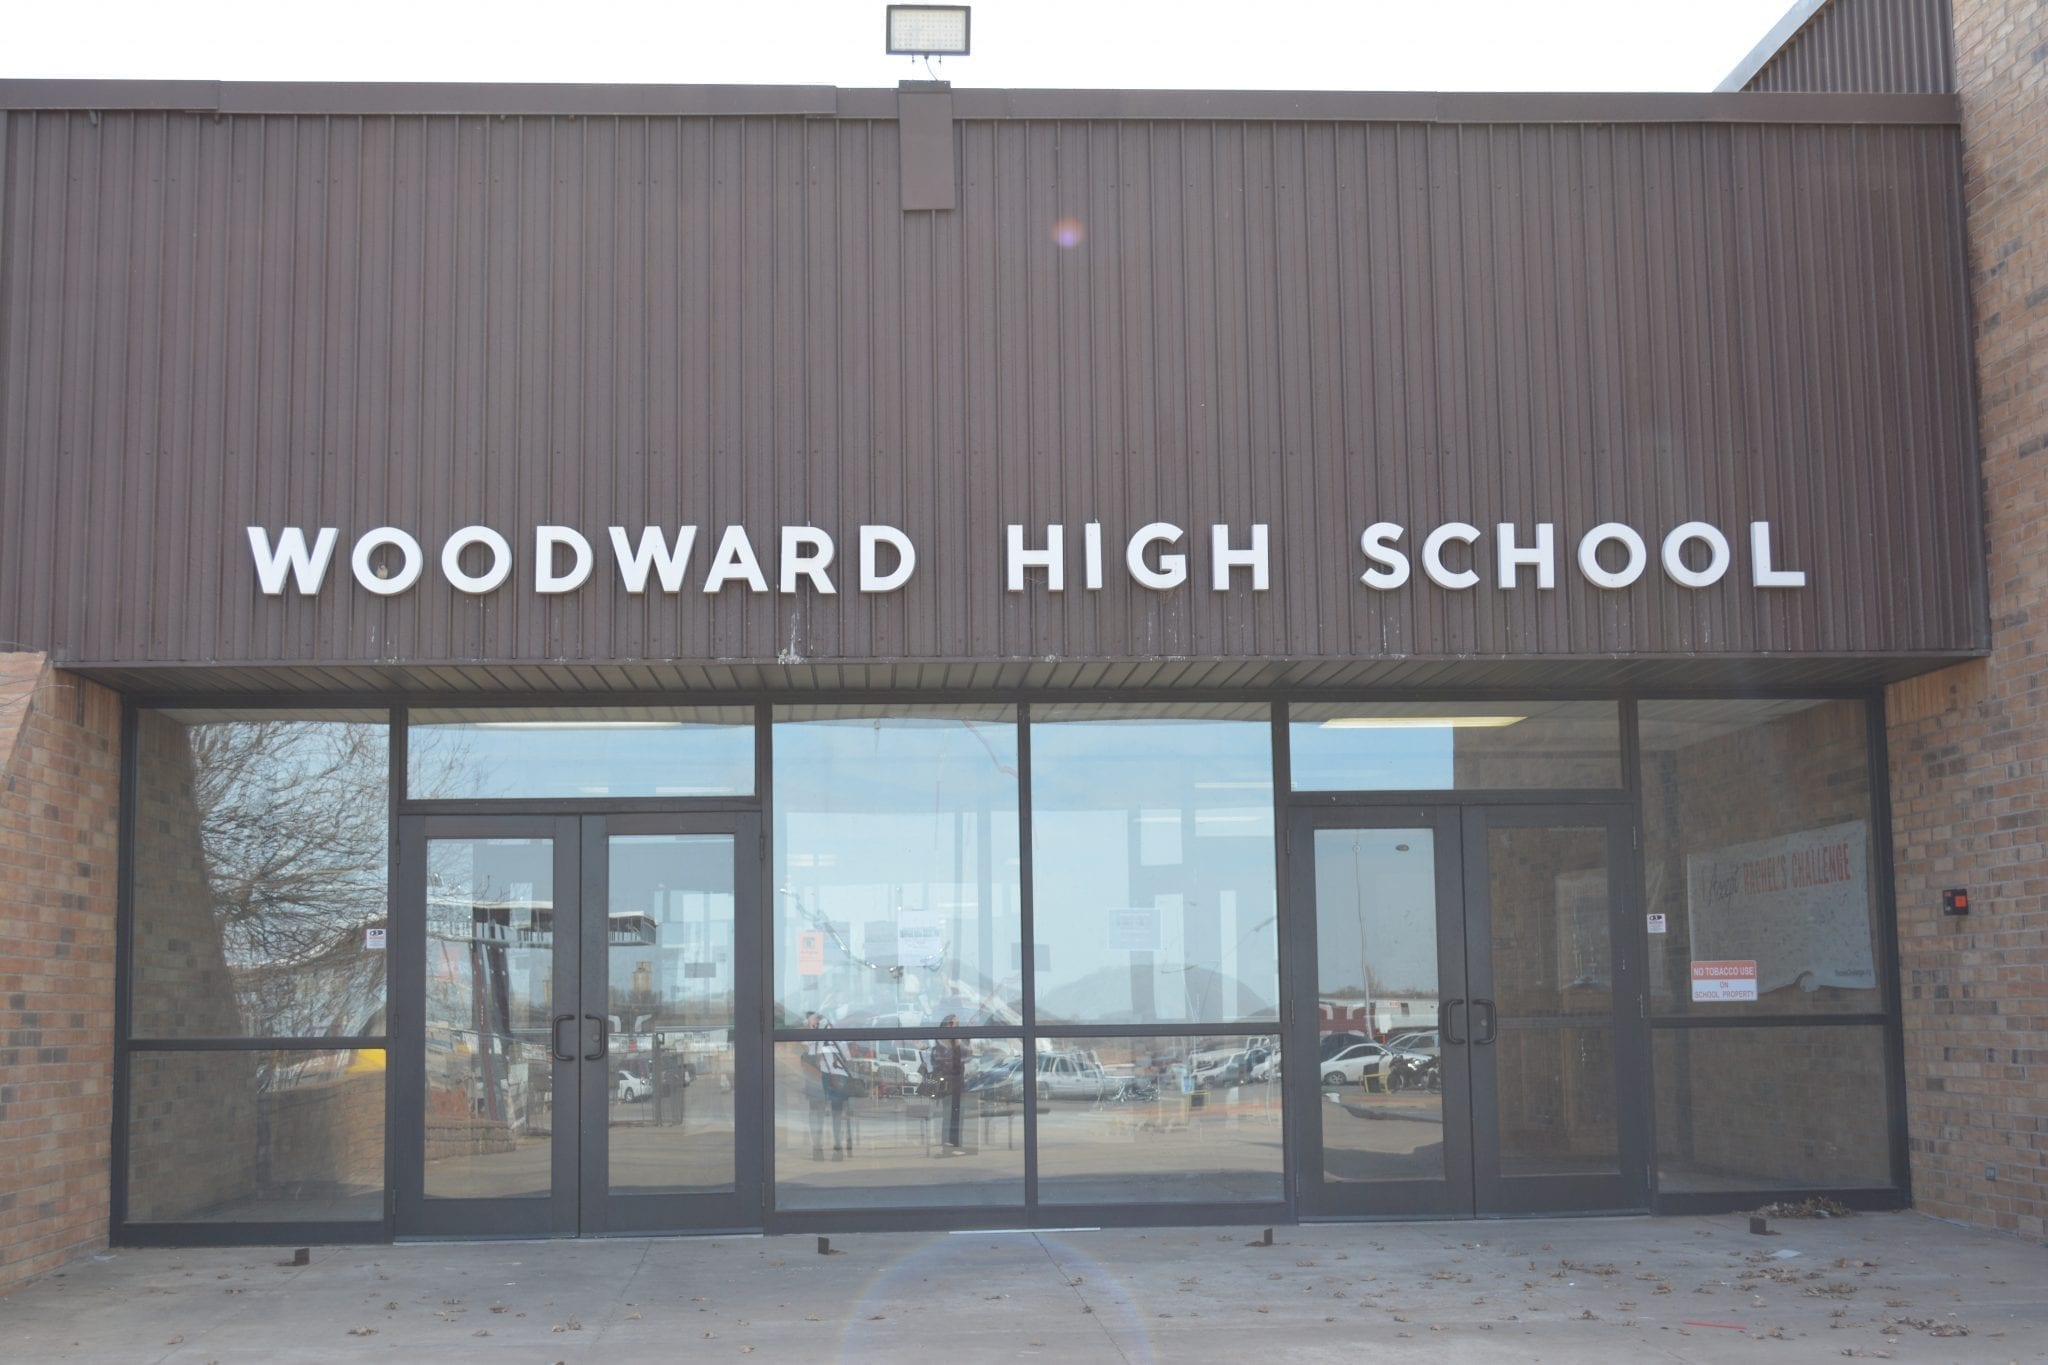 Entrance to Woodward High School